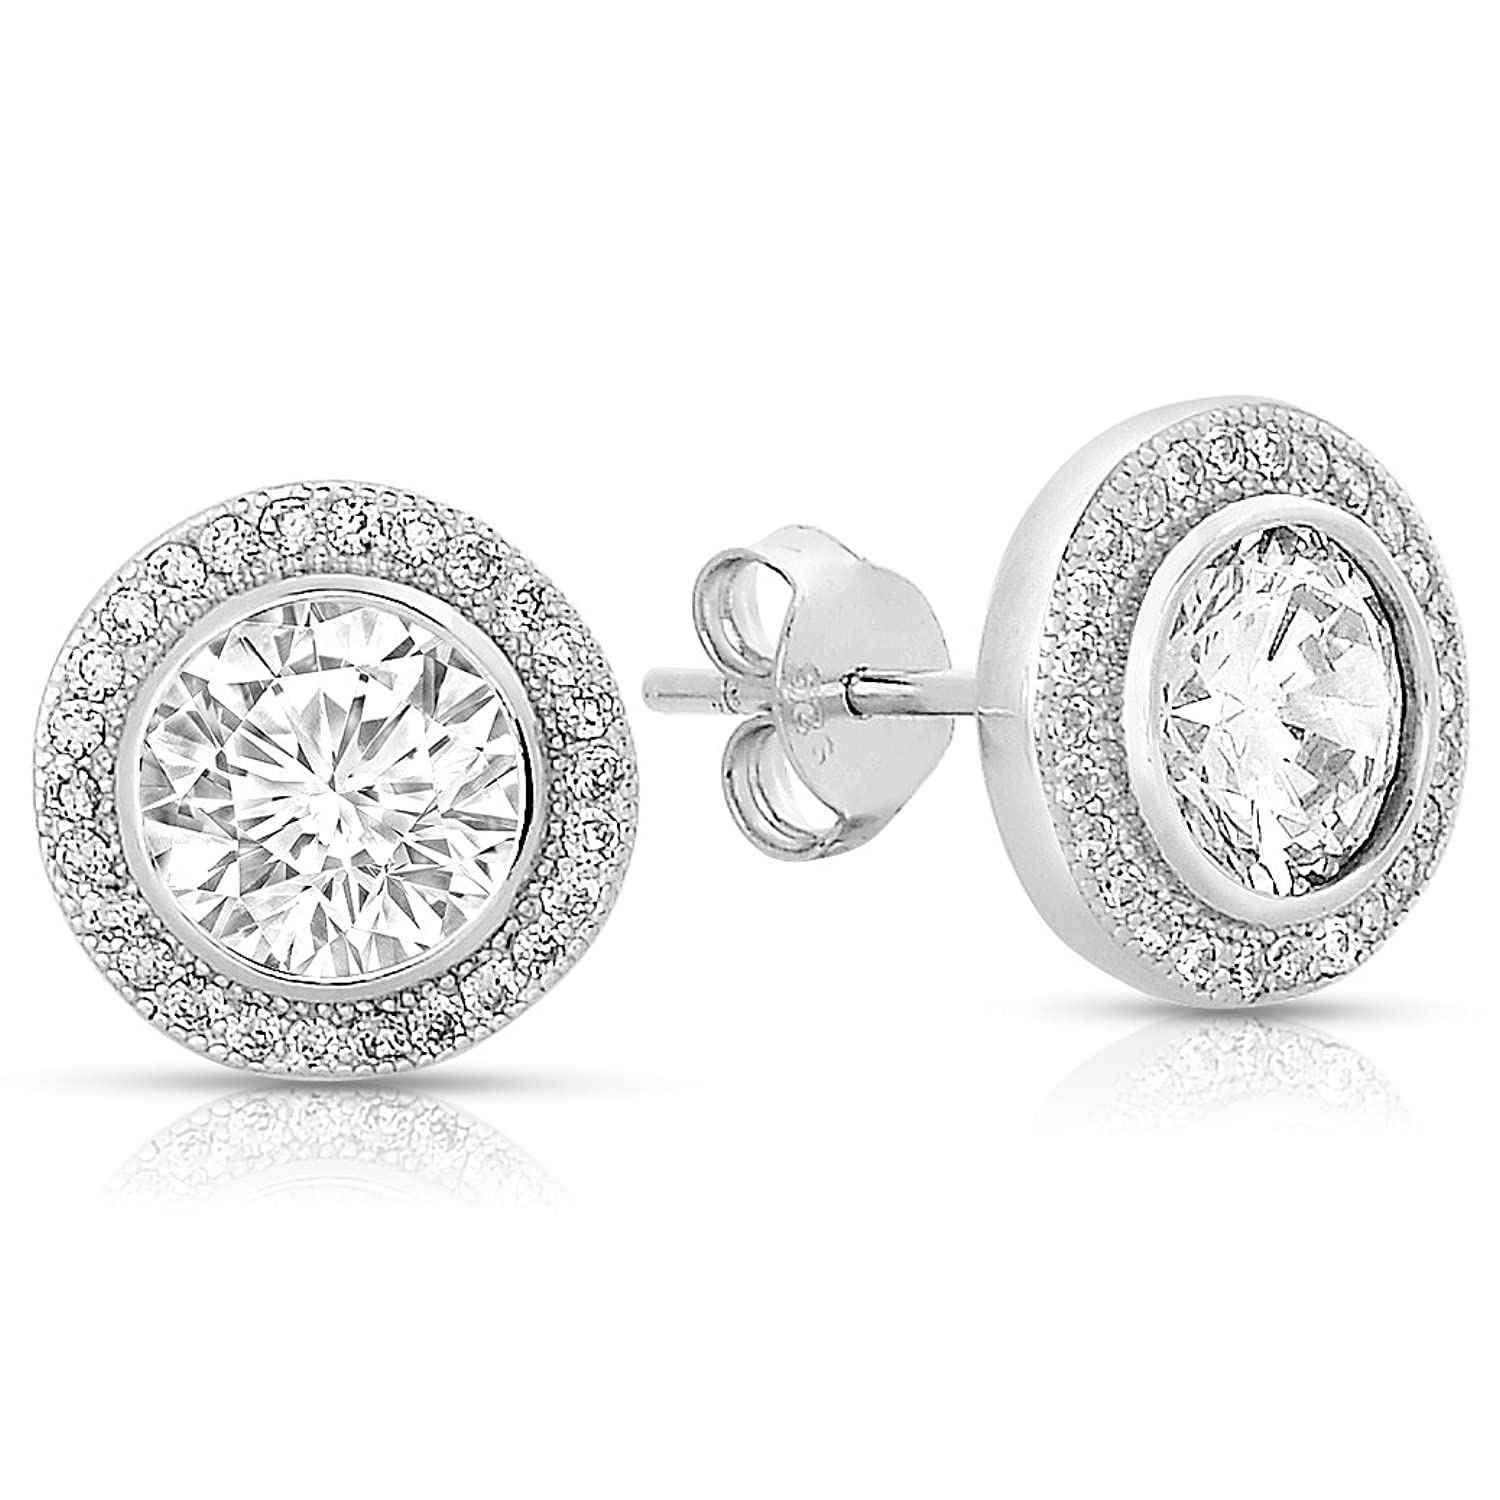 uk one constellation rhodium onebyone white halo in earrings cz constellations stud by sterling silver square jewellery